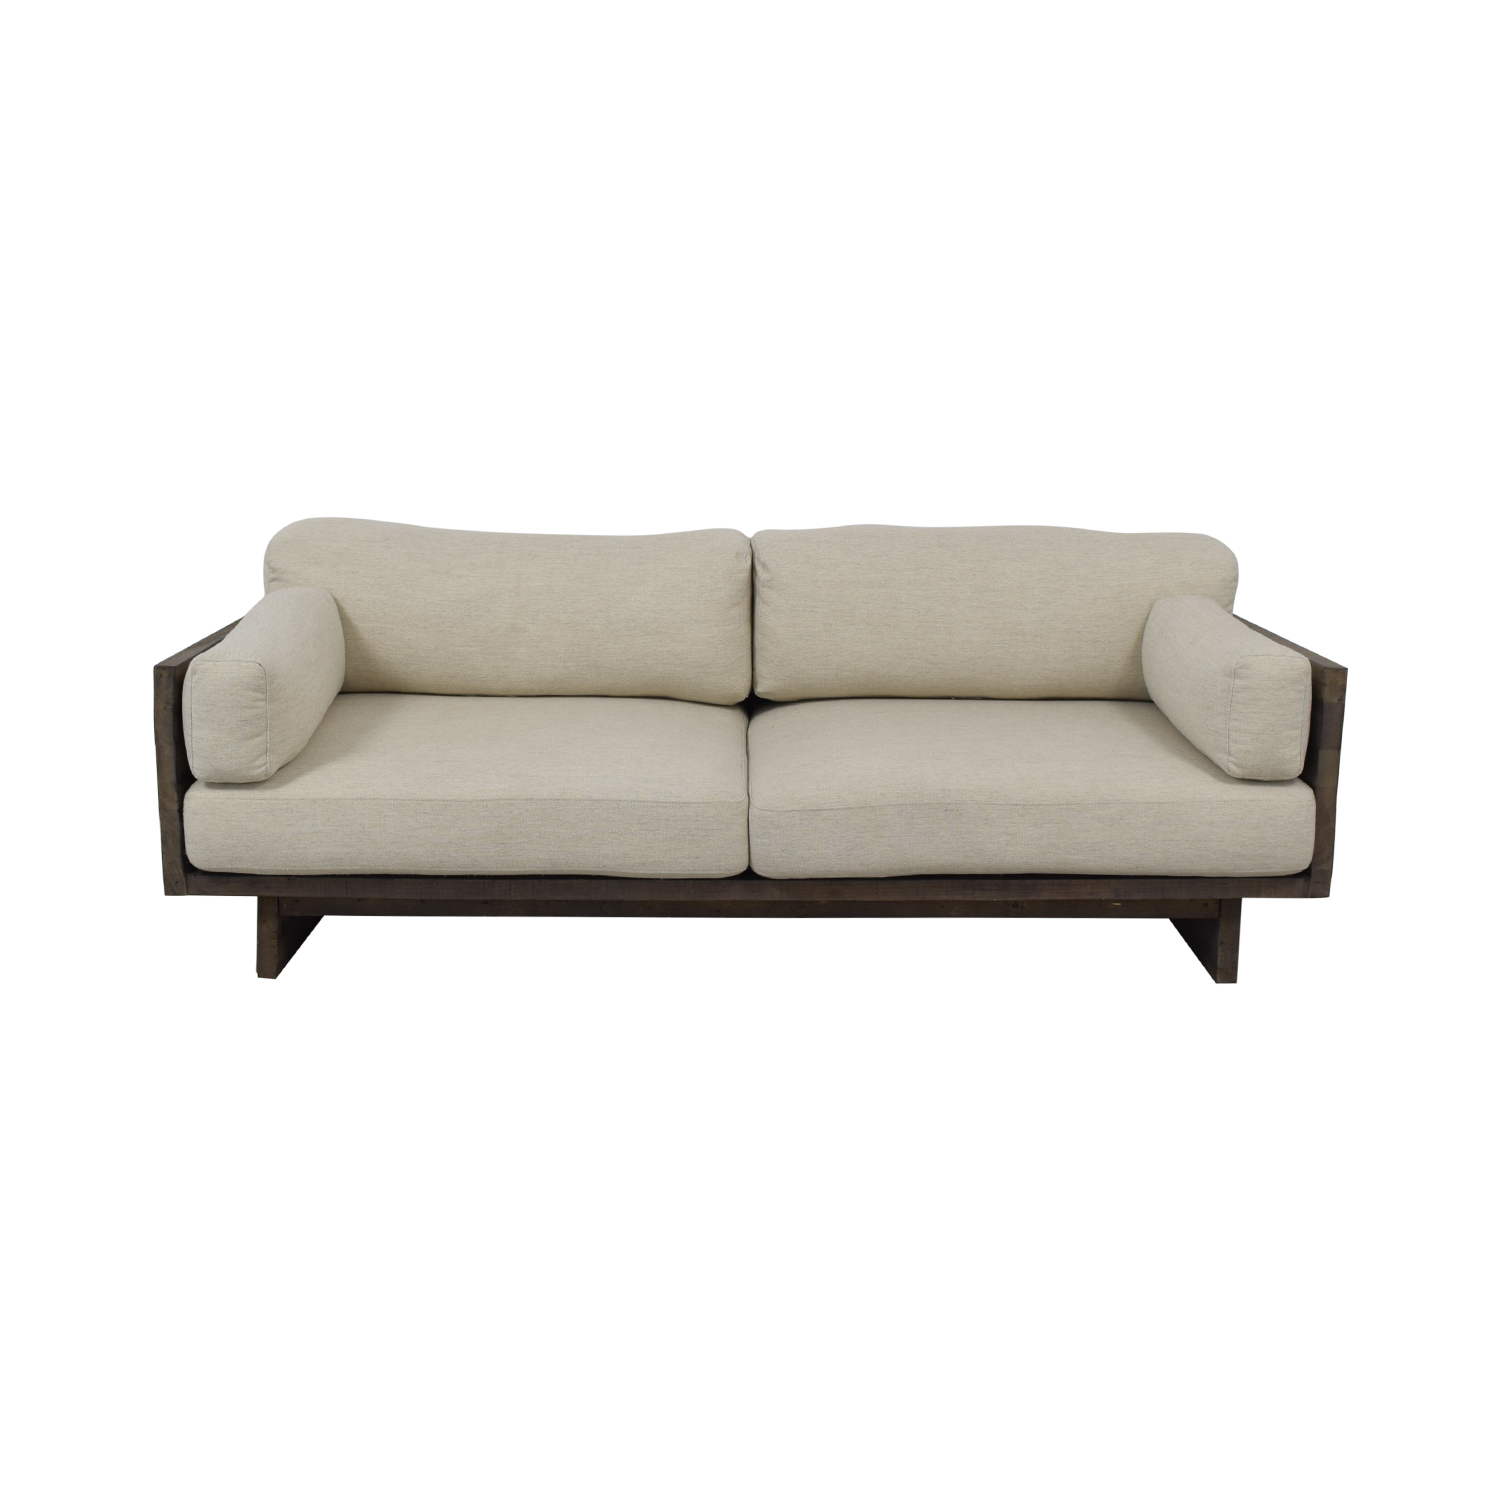 West Elm West Elm Emmerson Reclaimed Wood Sofa dimensions